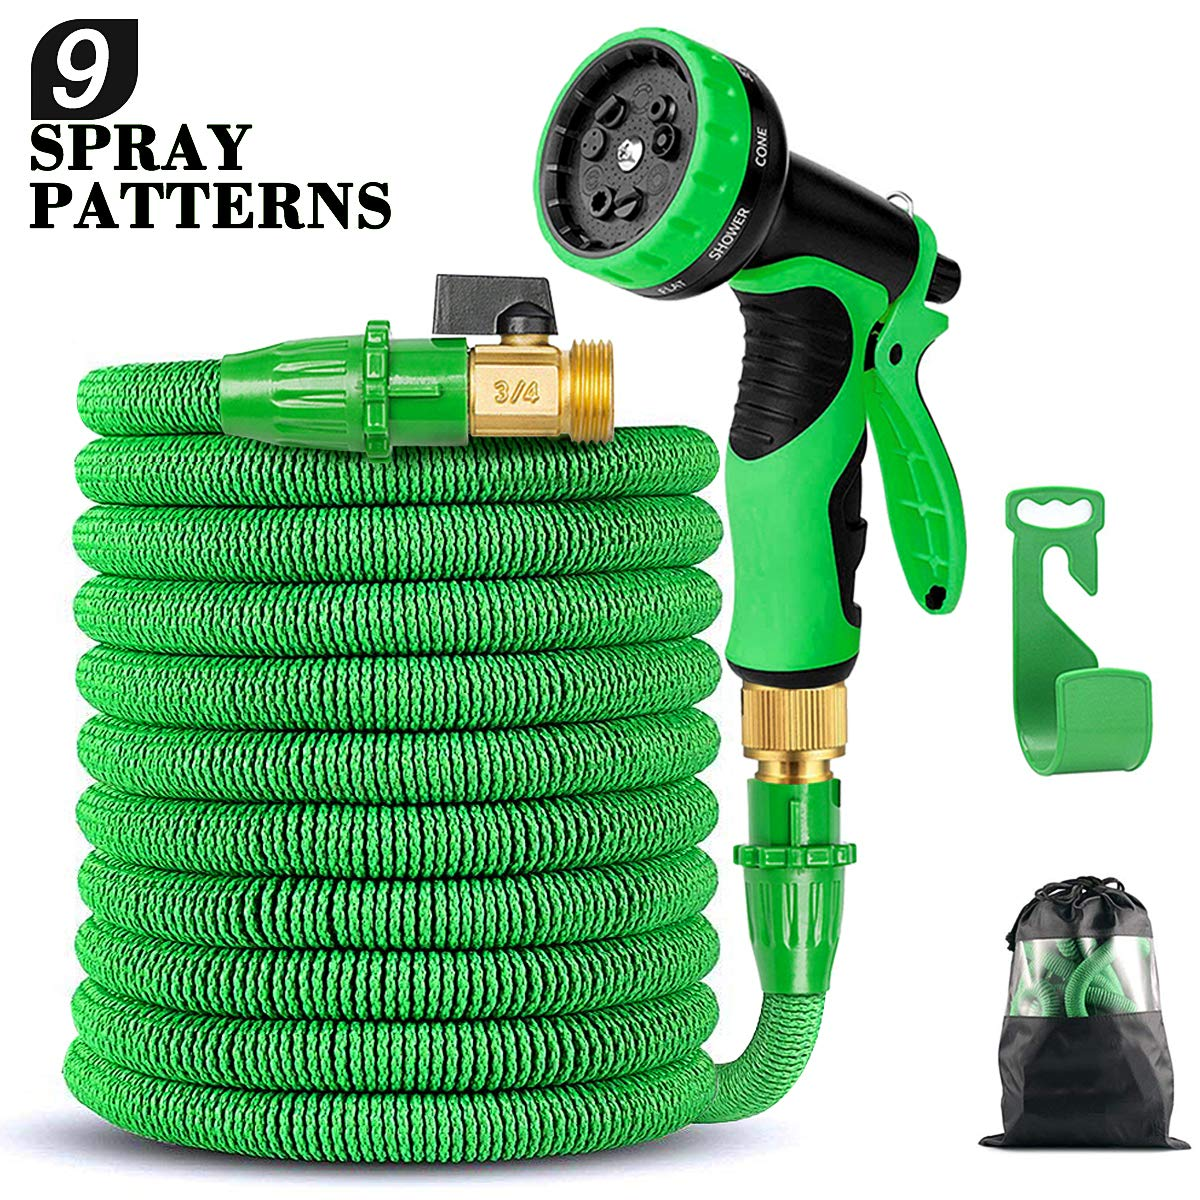 50FT Flexible Expandable Garden Hose with 9 Spray Patterns, Upgraded Retractable Water Hose with Triple Layer Latex Core&Fashion Brass Fitting & Extra Strong Fabric, Suitable for All Your Watering Needs product image